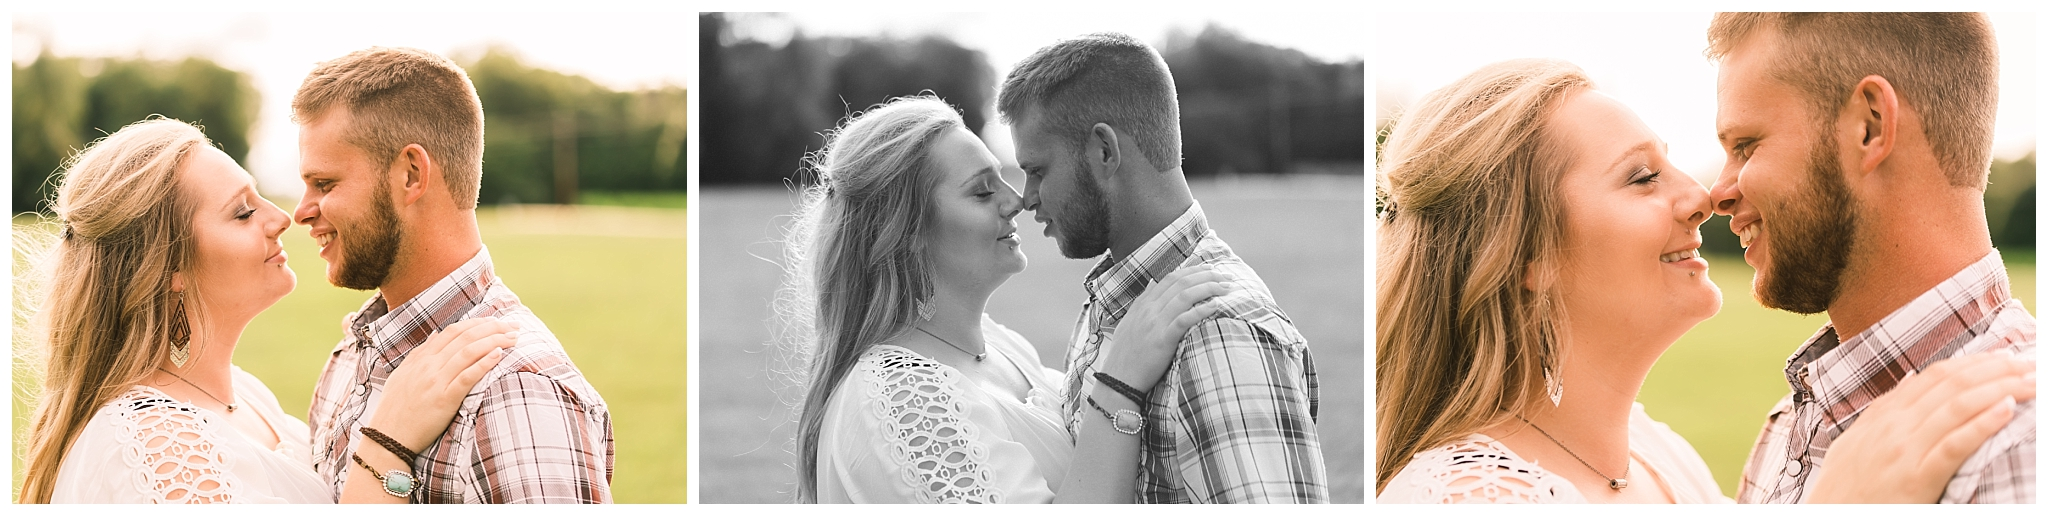 lafayette indiana sunset engagement photography county fair adventure new adventure productions_0676.jpg